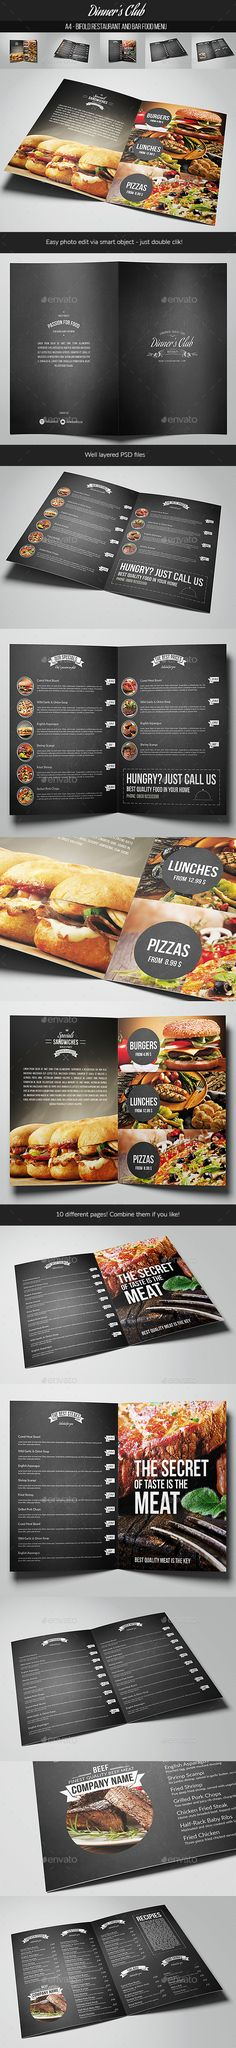 Restaurant & Bar Food Menu Template PSD #design Download: http://graphicriver.net/item/restaurant-bar-food-menu-/13728759?ref=ksioks